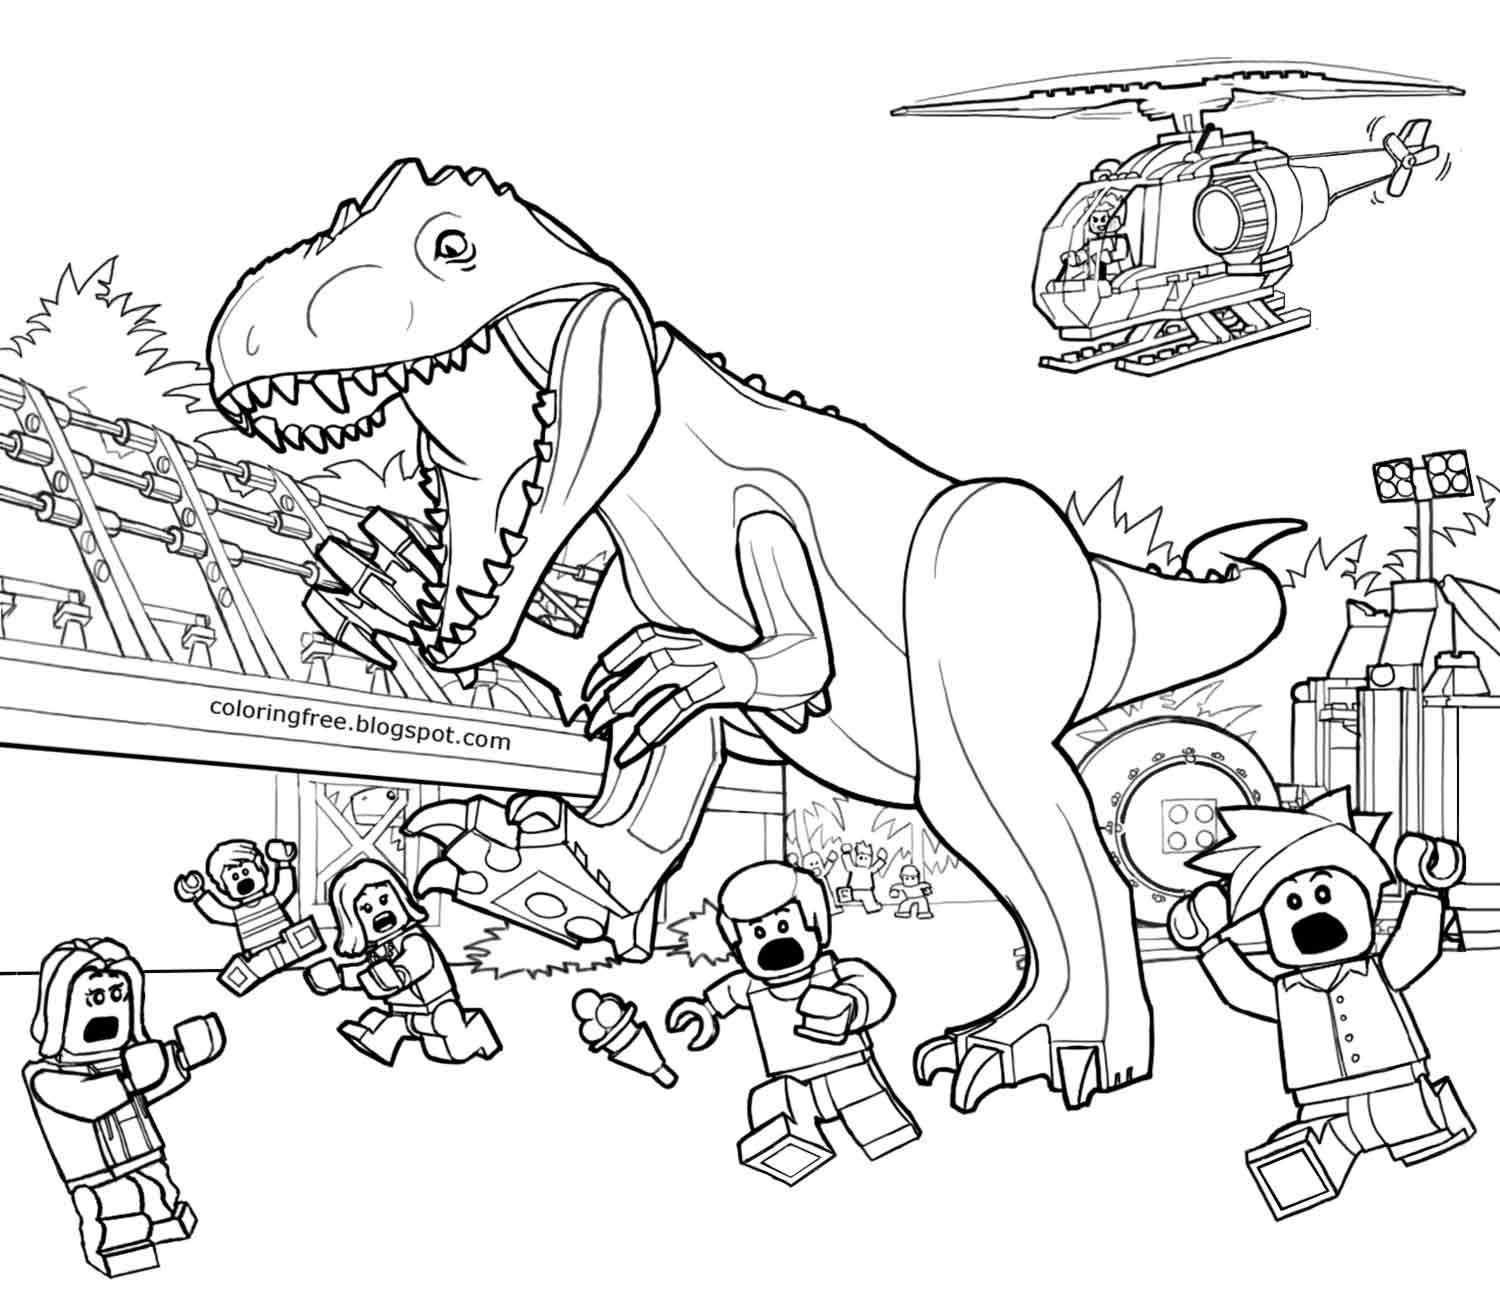 1500x1300 Underwater Dinosaurs Coloring Pages Fresh Amazing Rtgykadrc